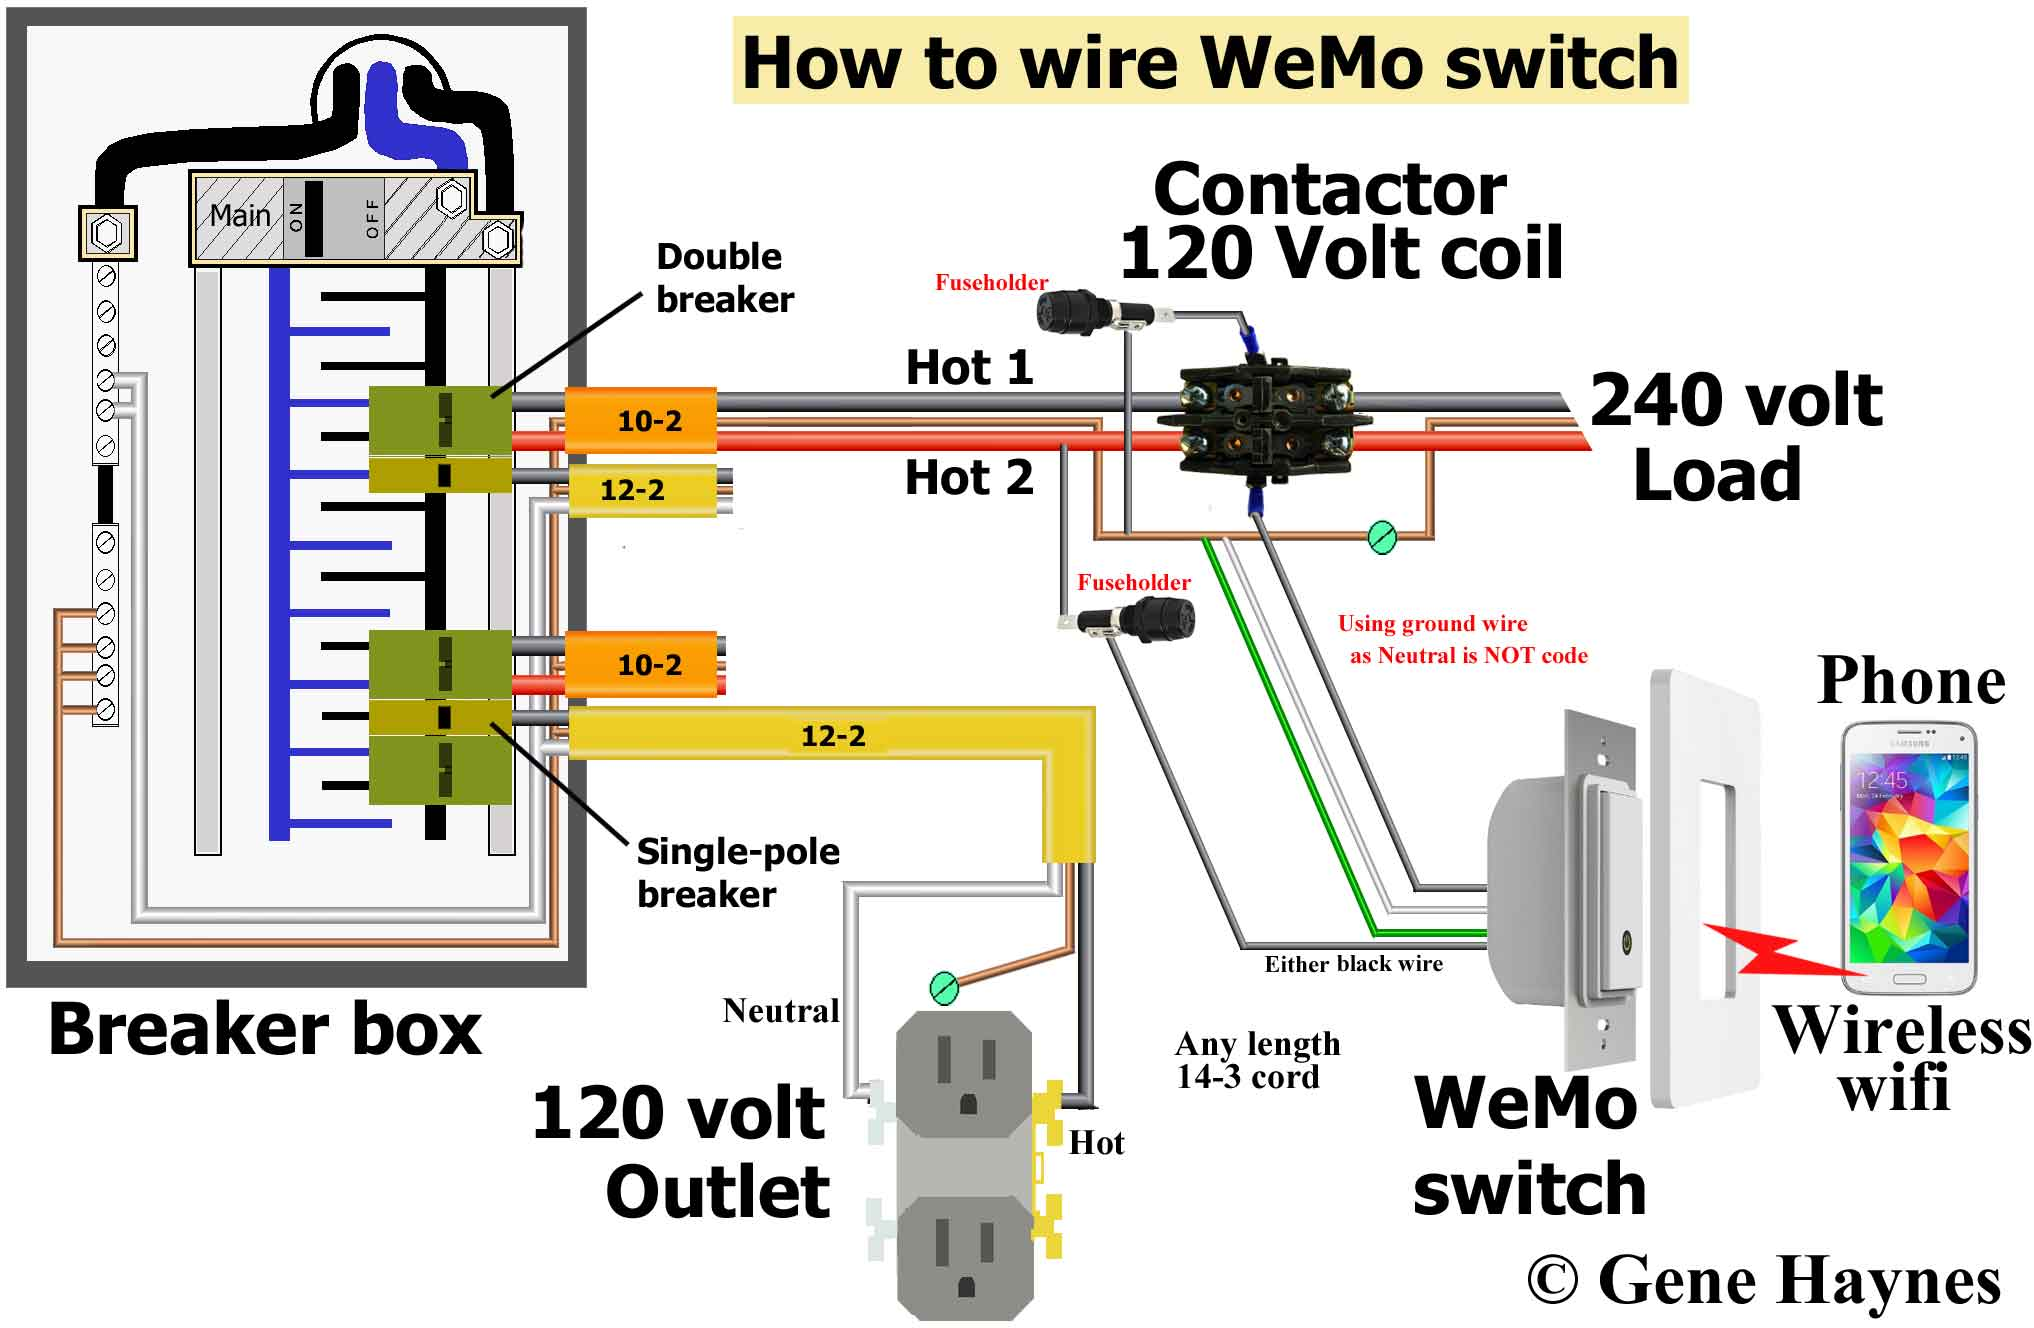 This wiring is not code. Use wiring diagram shown above